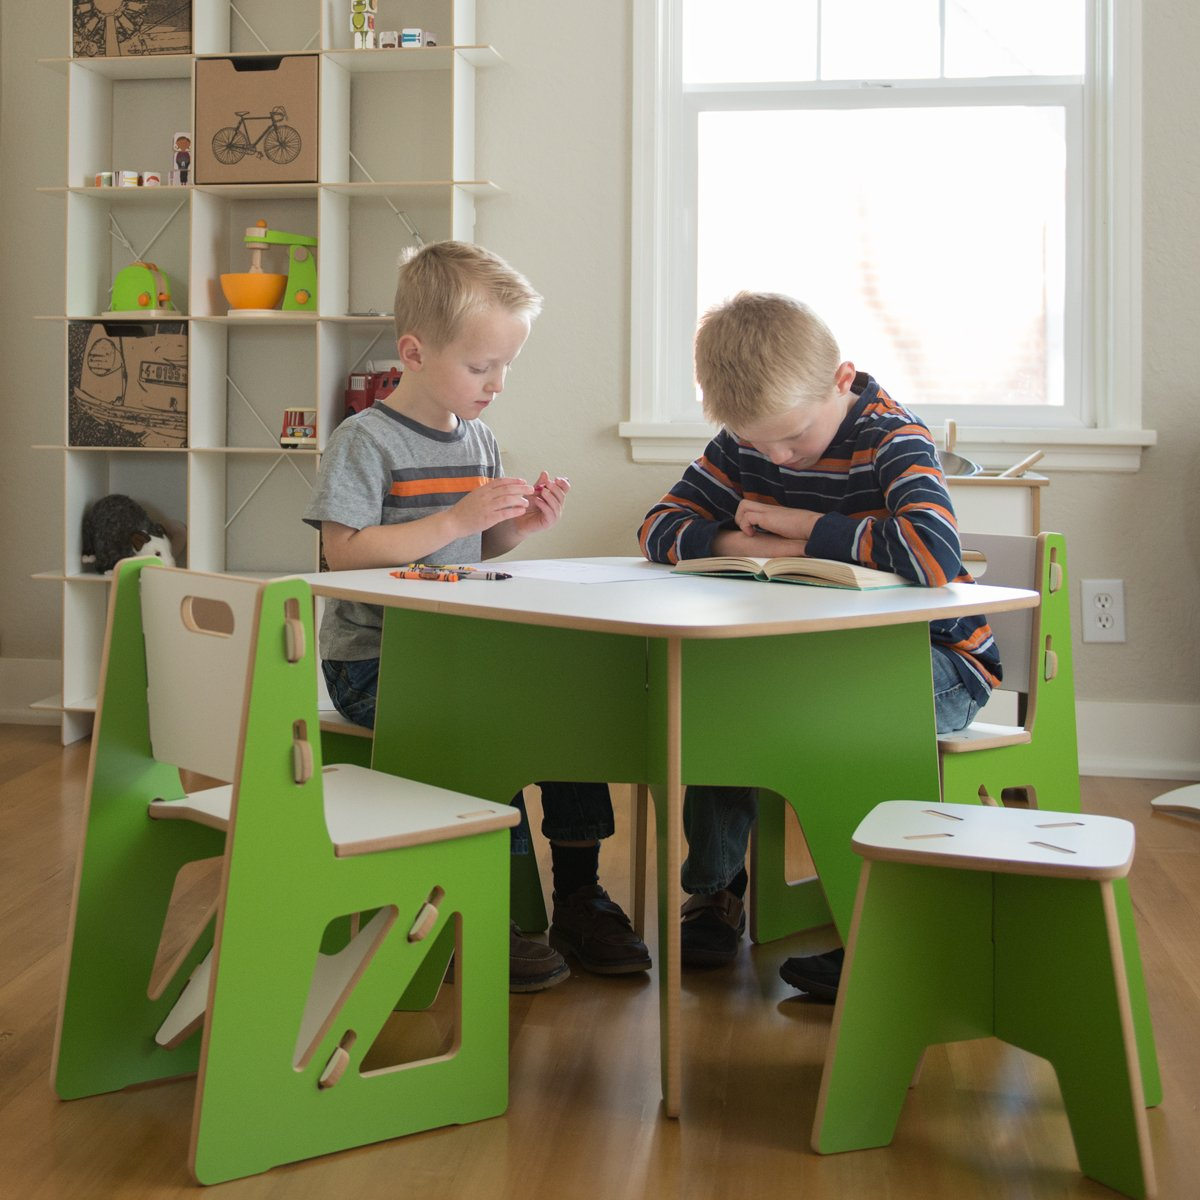 Amazon.com: Sprout Modern Kids Table and 2 Chair Set, Grey and White ...